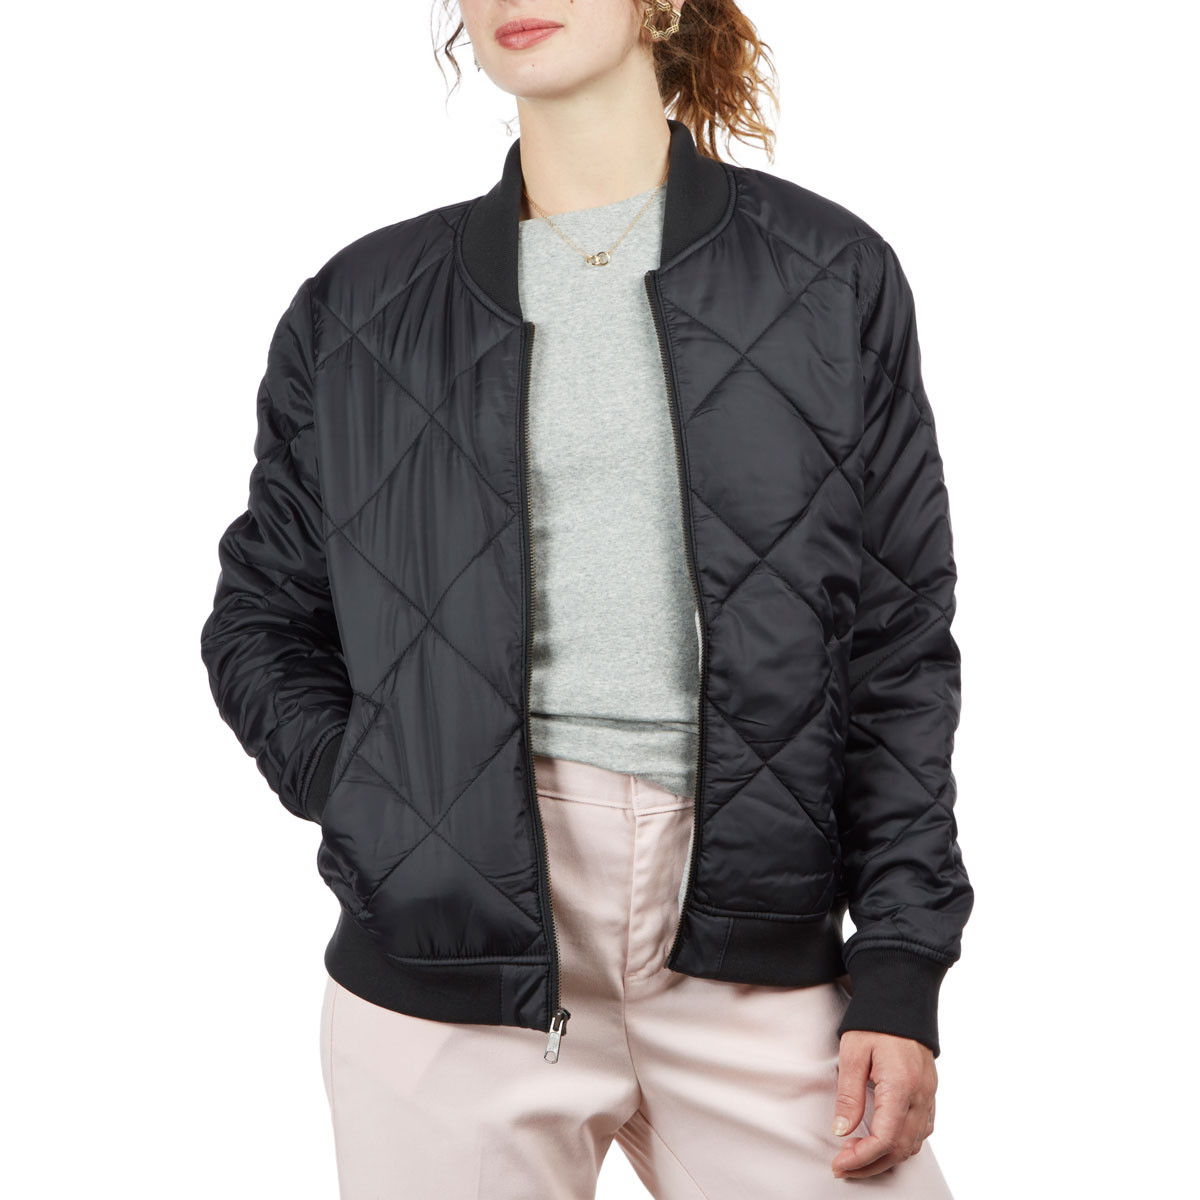 3a35f5028af Dickies Womens Quilted Bomber Jacket - Black